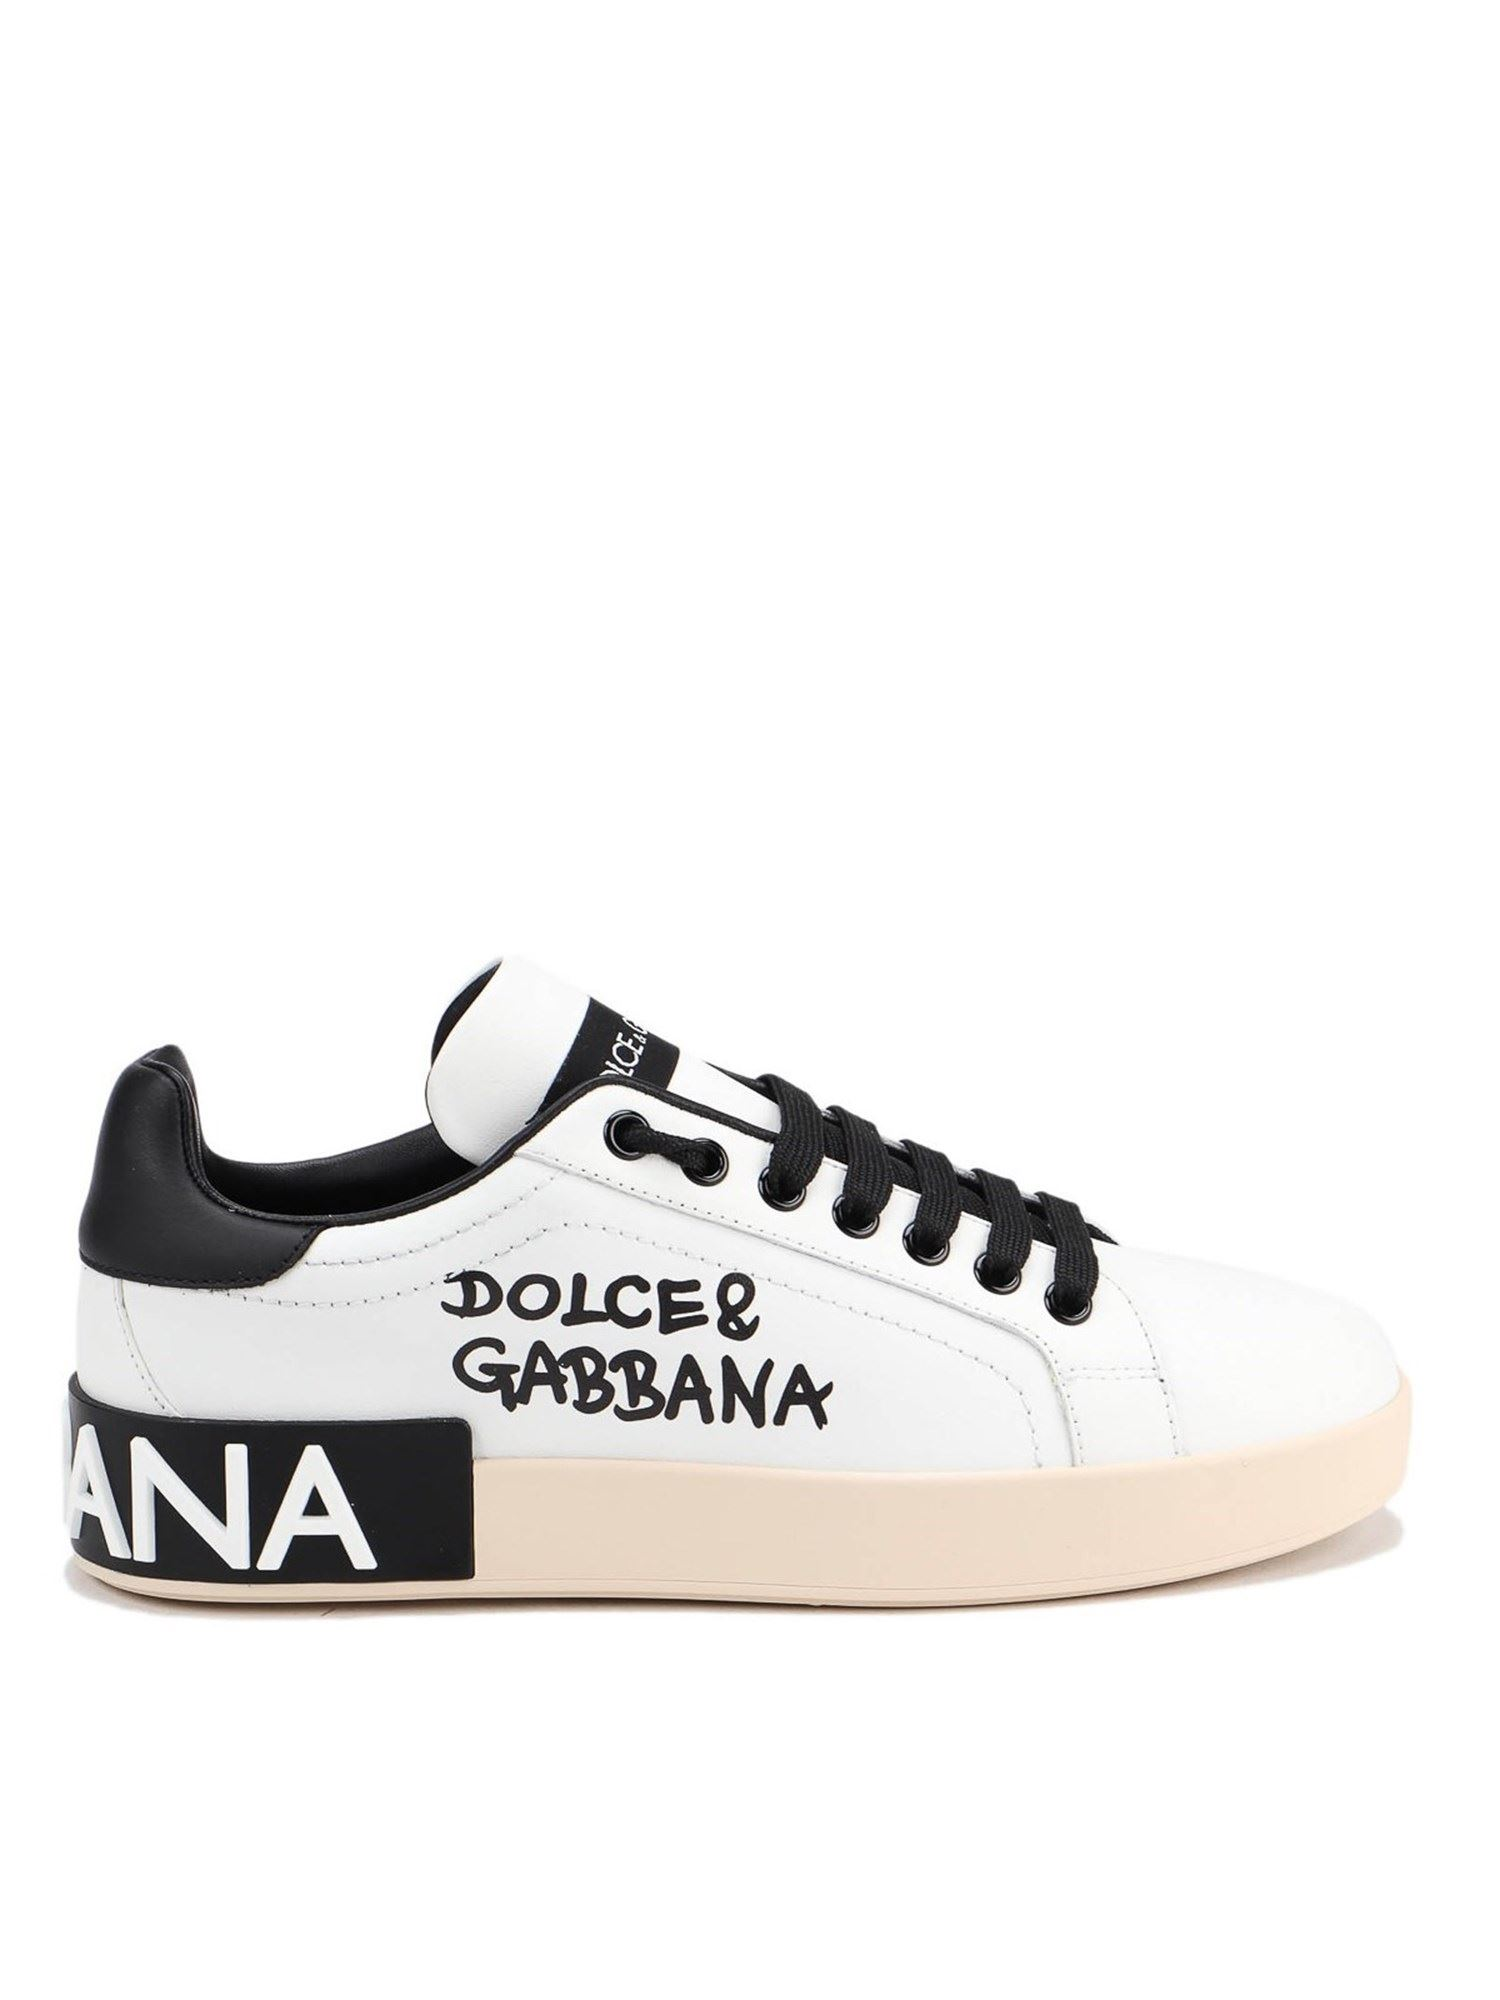 Dolce & Gabbana PORTOFINO SNEAKERS IN WHITE AND BLACK